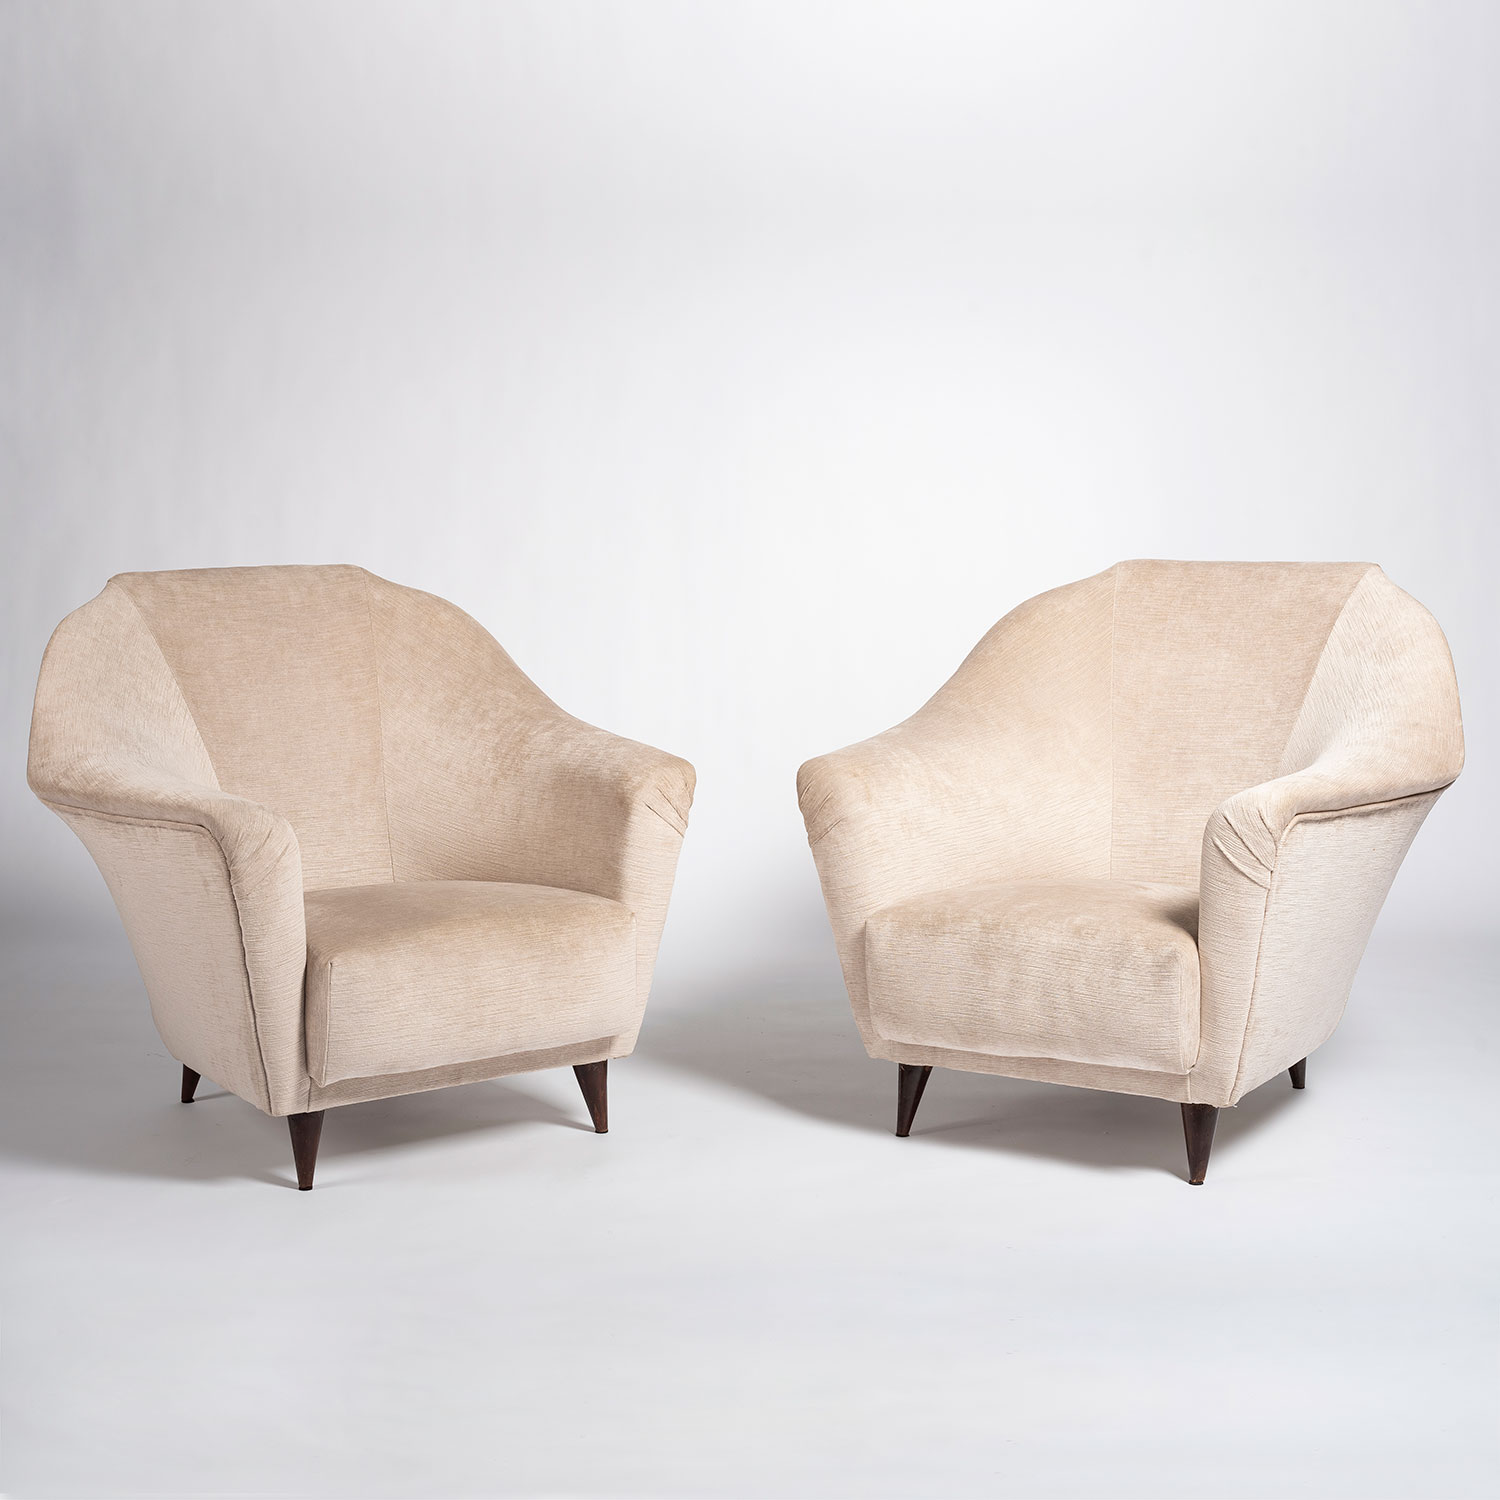 Front view of Ico Parisi white armchairs